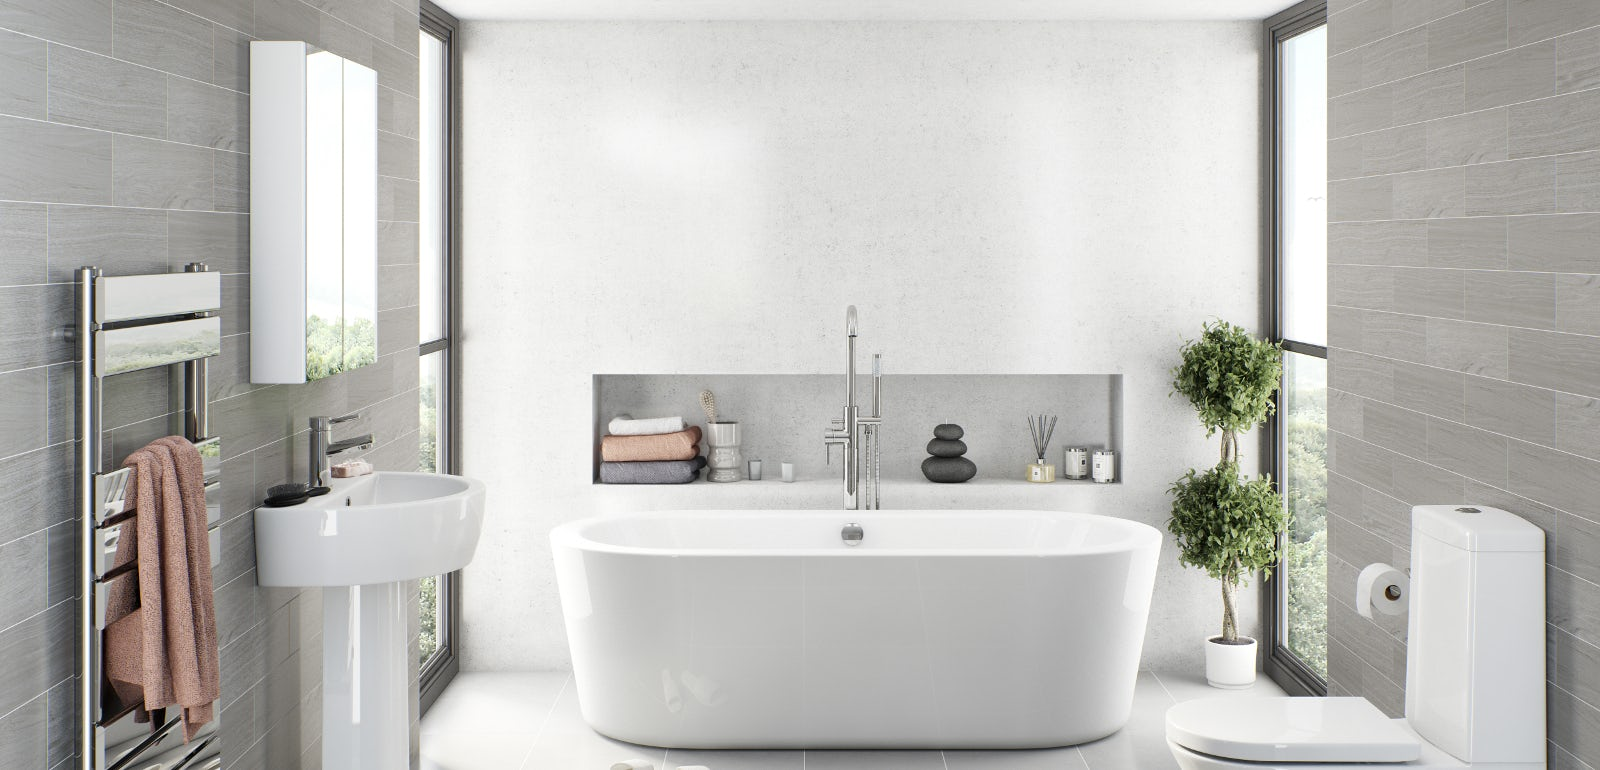 How Much Should You Pay To Have A Bathroom Fitted?